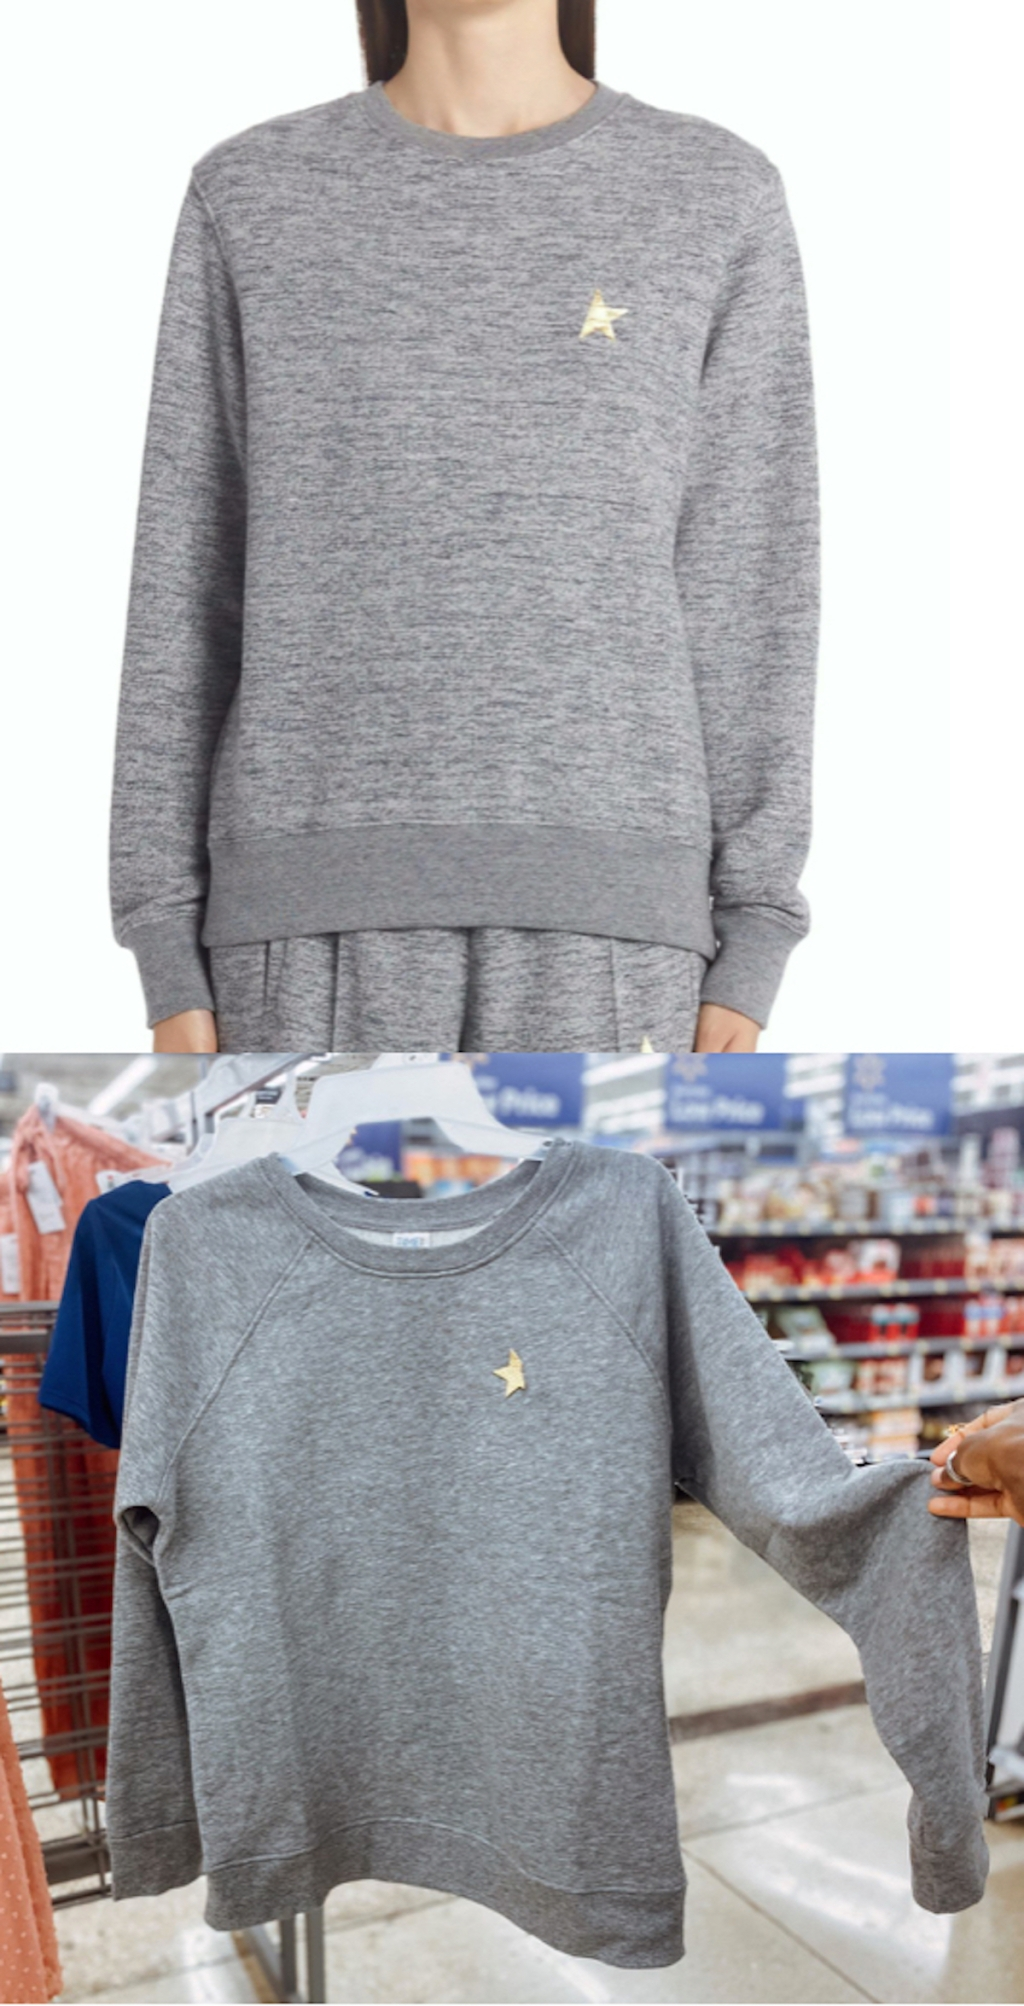 comparison of gray sweatshirt with gold star on front